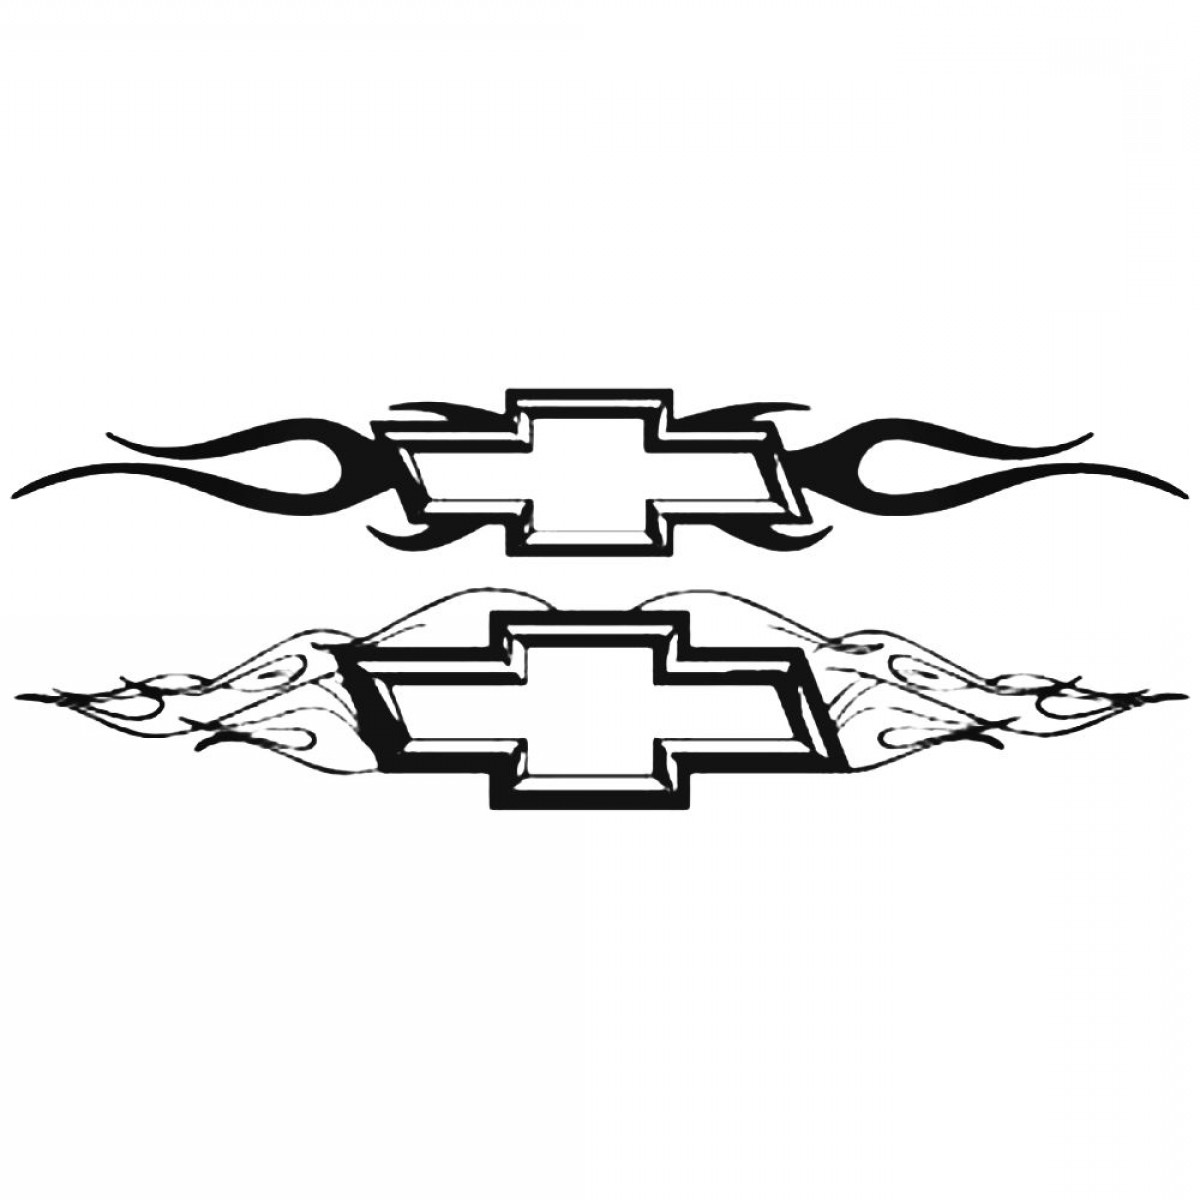 Chevy Logo Vector: Chevy Chisiled With Flames Logo Vector Aftermarket Decal Sticker